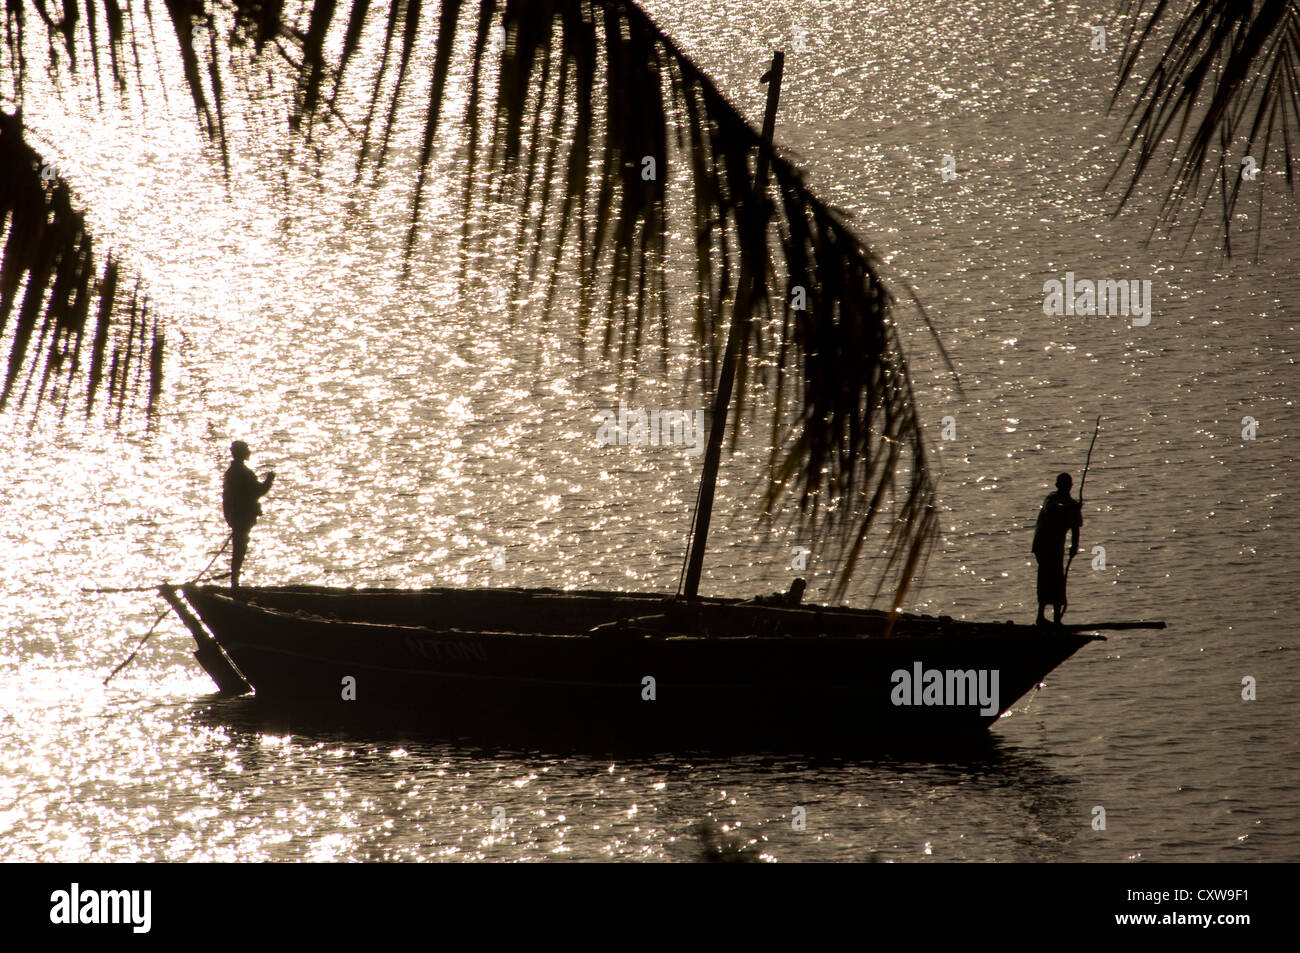 This silhouette style picture of  a dhow was taken early morning in Mocimboa da Praia, Mozambique. - Stock Image